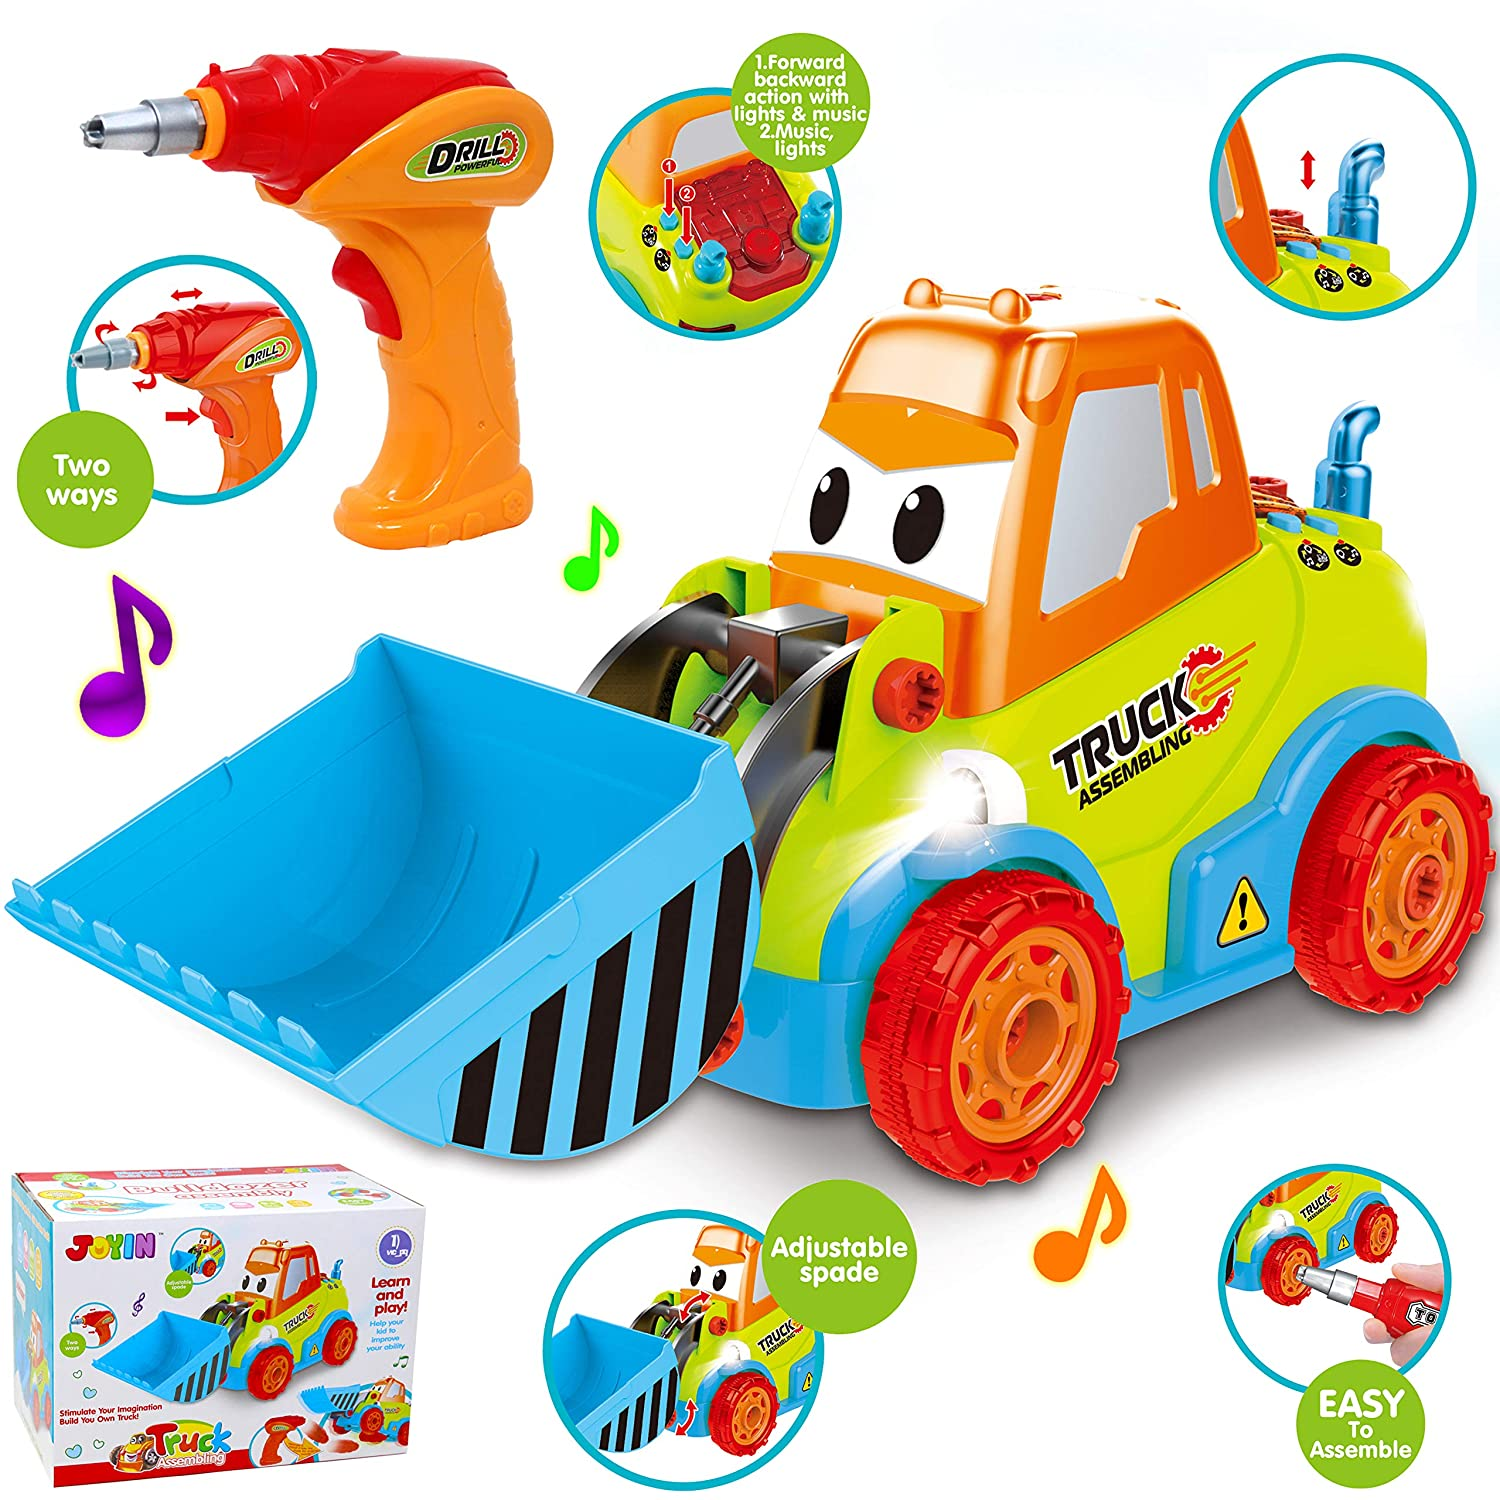 Take-Apart Truck Toy DIY Construction Bulldozer Assembly Light and Sound Car Truck with Drill and Tools, LED Light Up for 3 4 5 Years Old Boys Girls, Toddler Learning, STEM Educational Gift, Stuffers